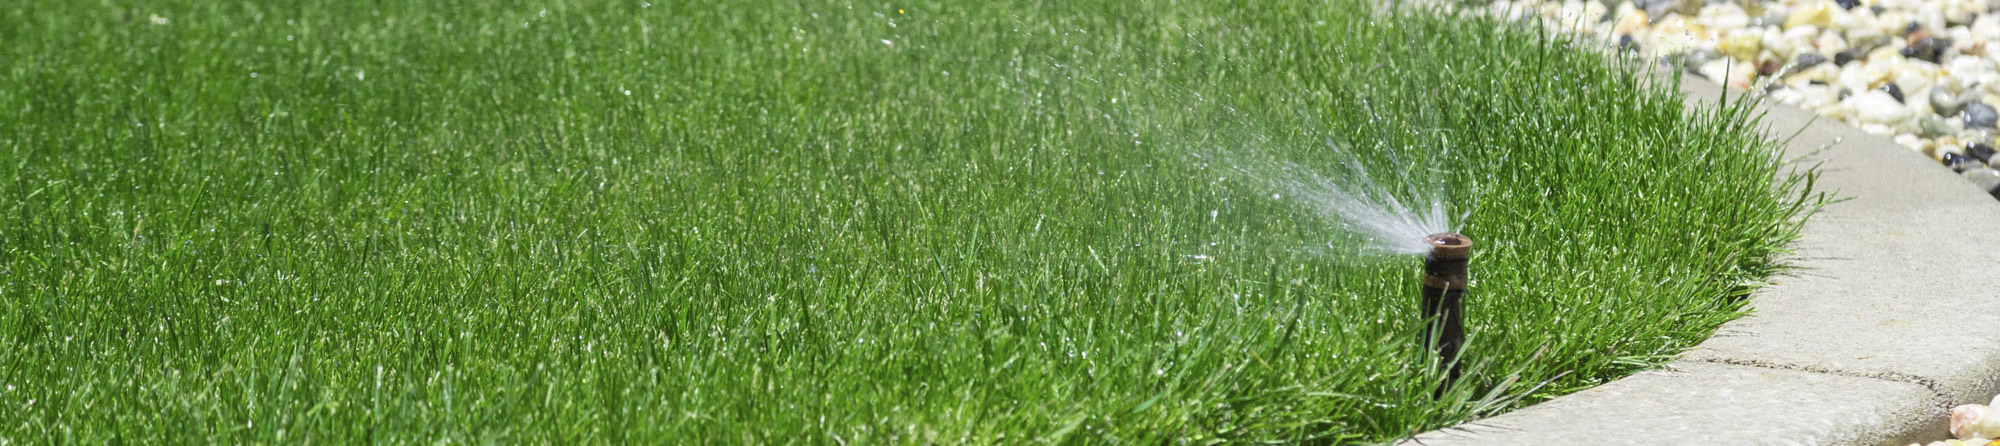 water spraying out of sprinkler onto green grass